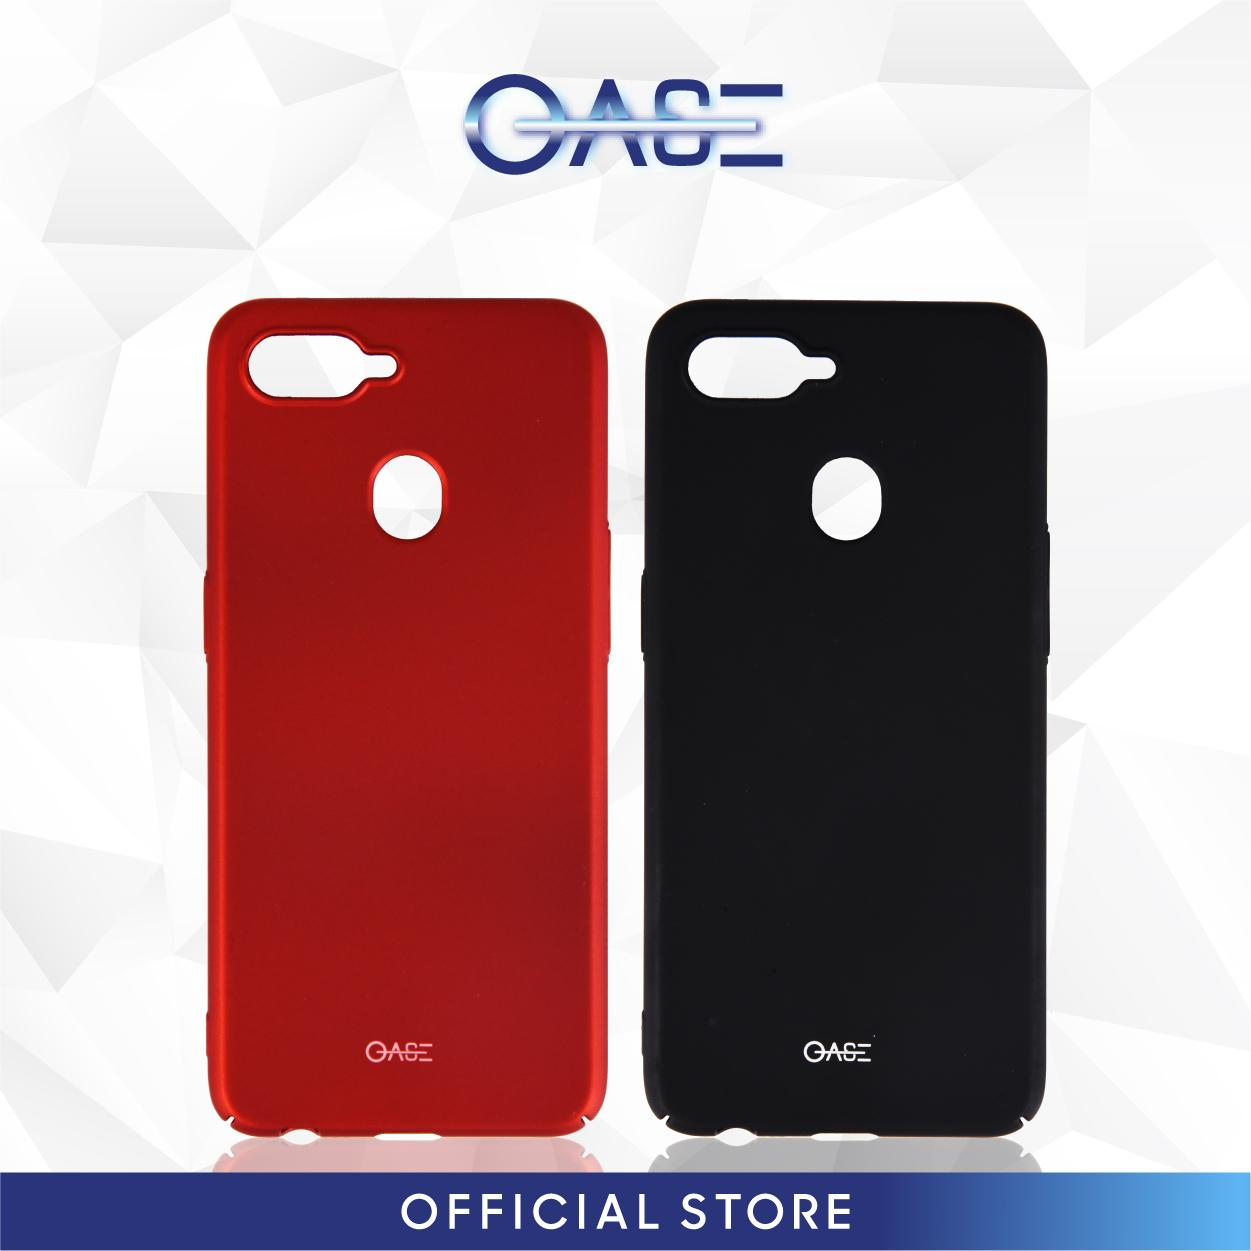 Casing Hp Oppo Terbaru Termurah Meriah Case F5 Youth Ironman Hybrid With Kick Stand Protective Shell F9